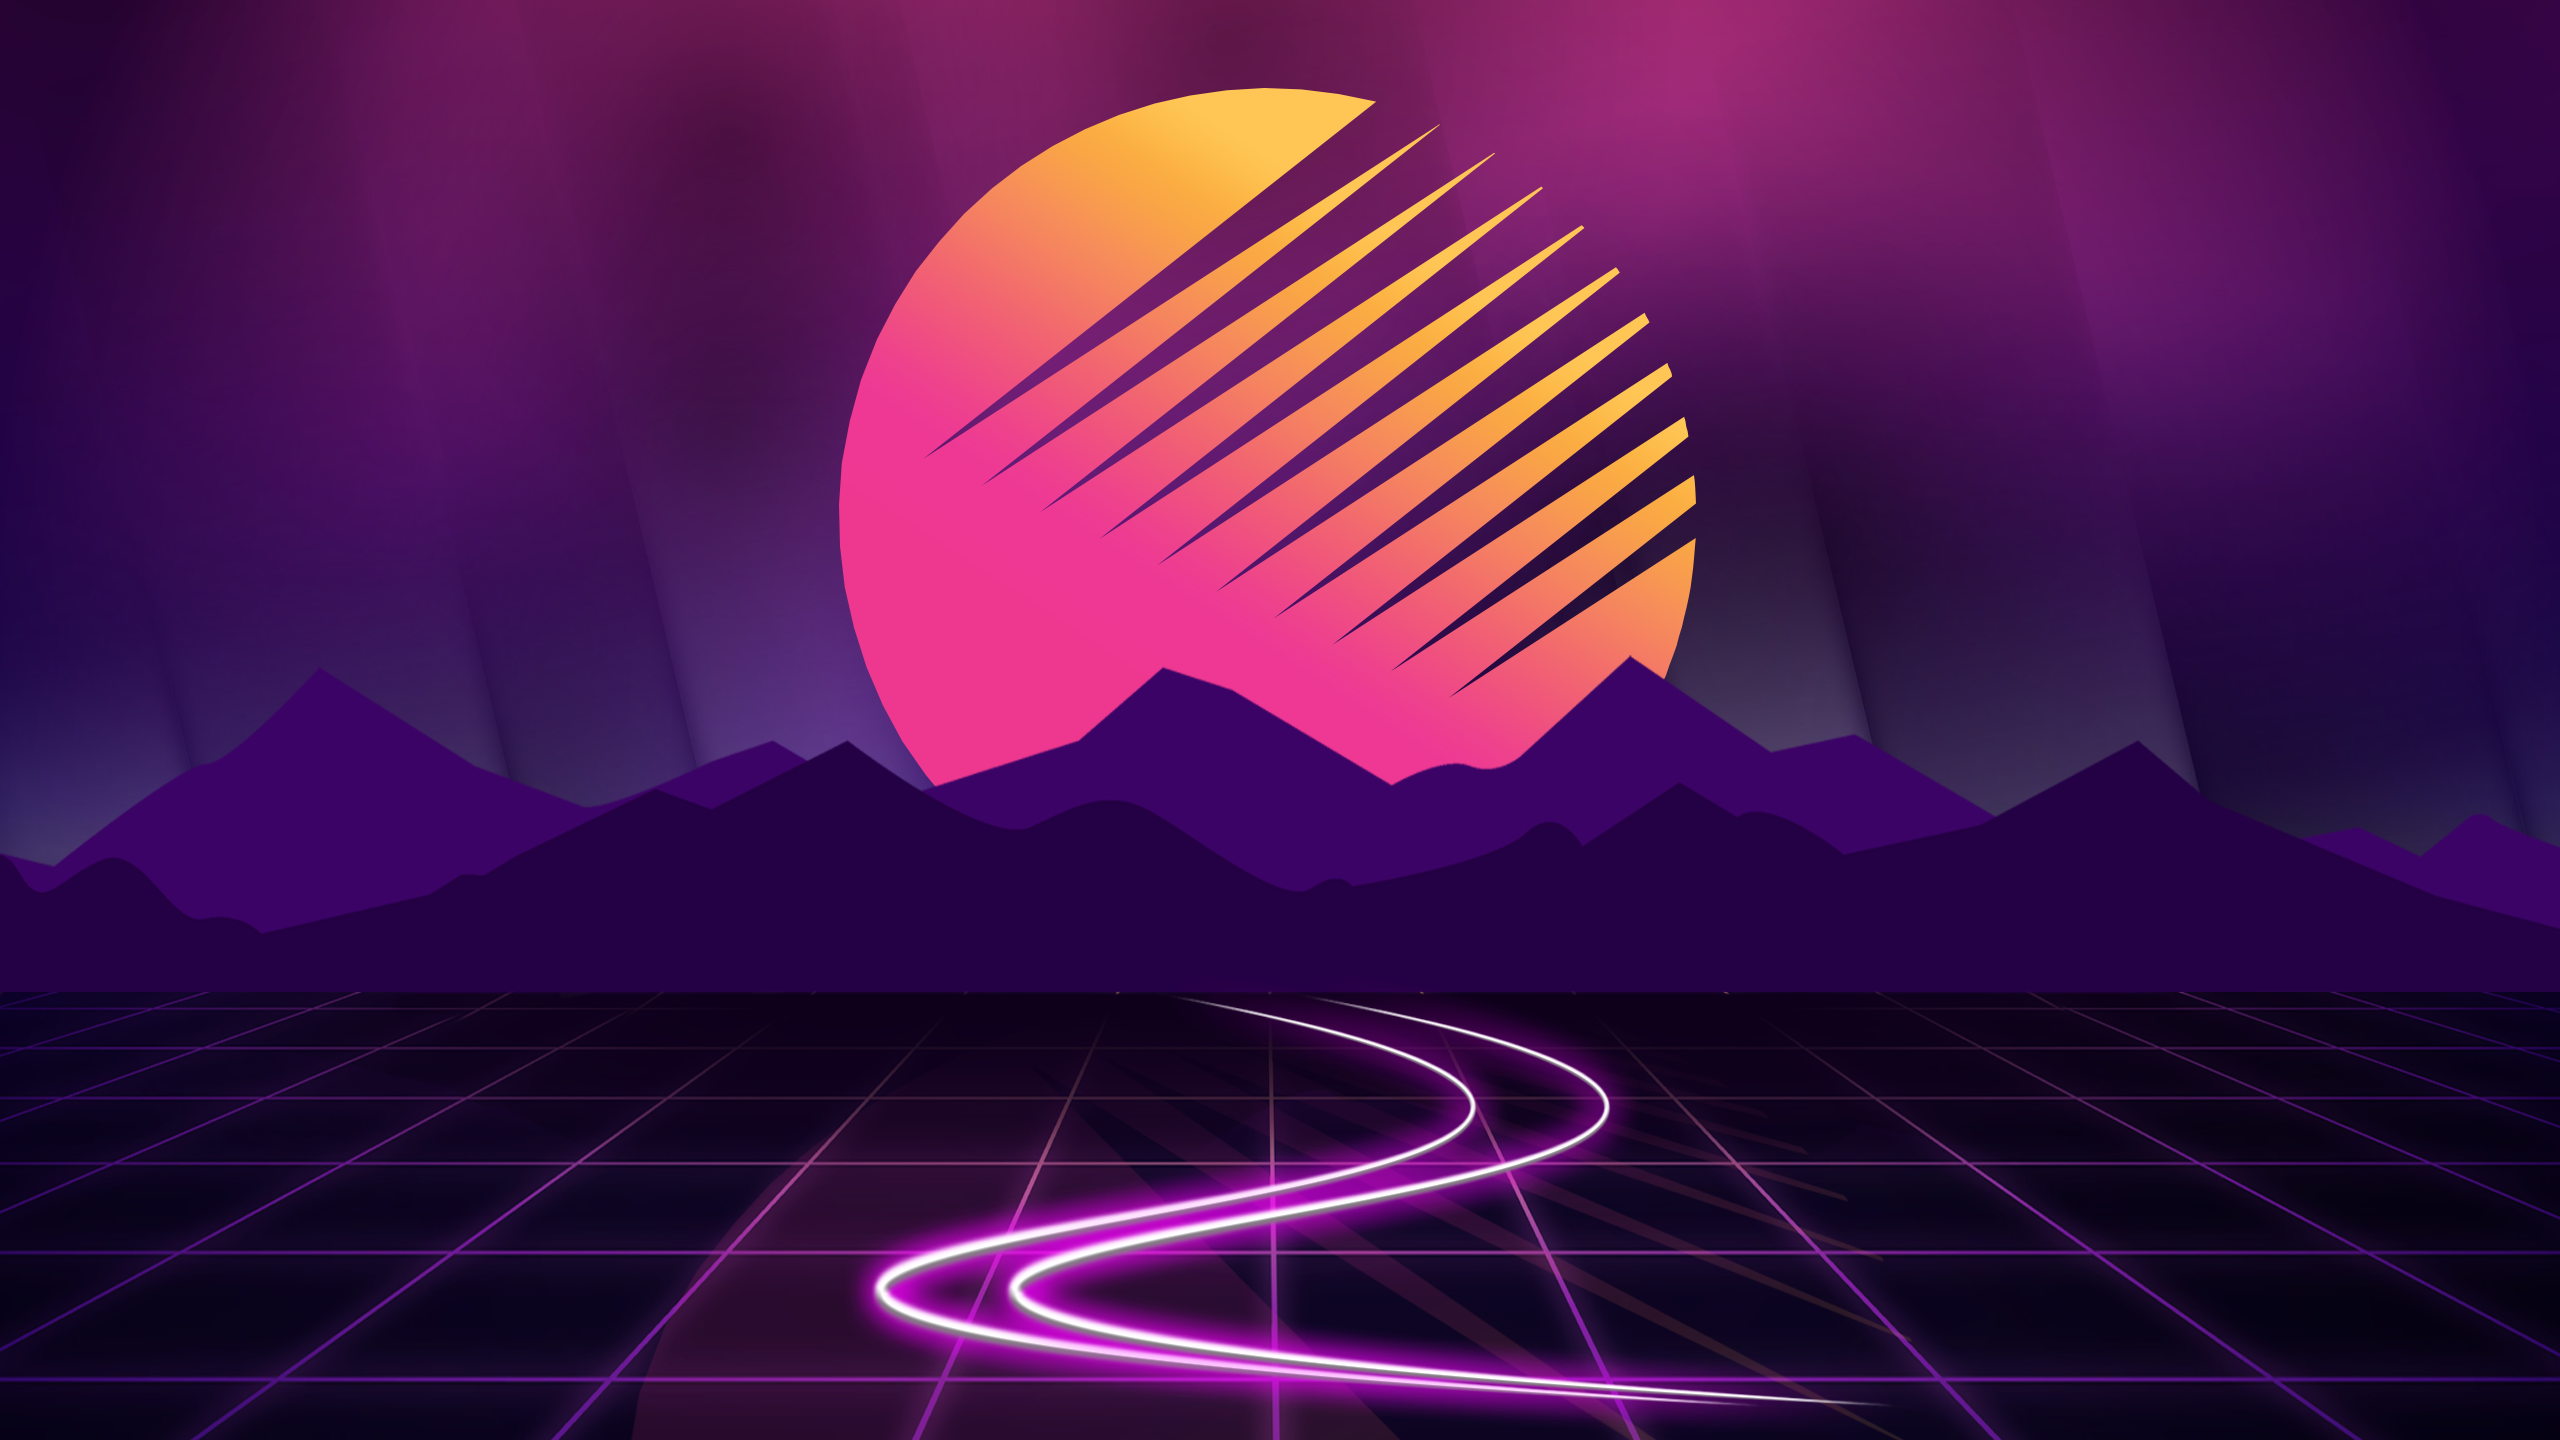 Retro Wave Hd Wallpaper Background Image 2560x1440 Id 914666 Wallpaper Abyss